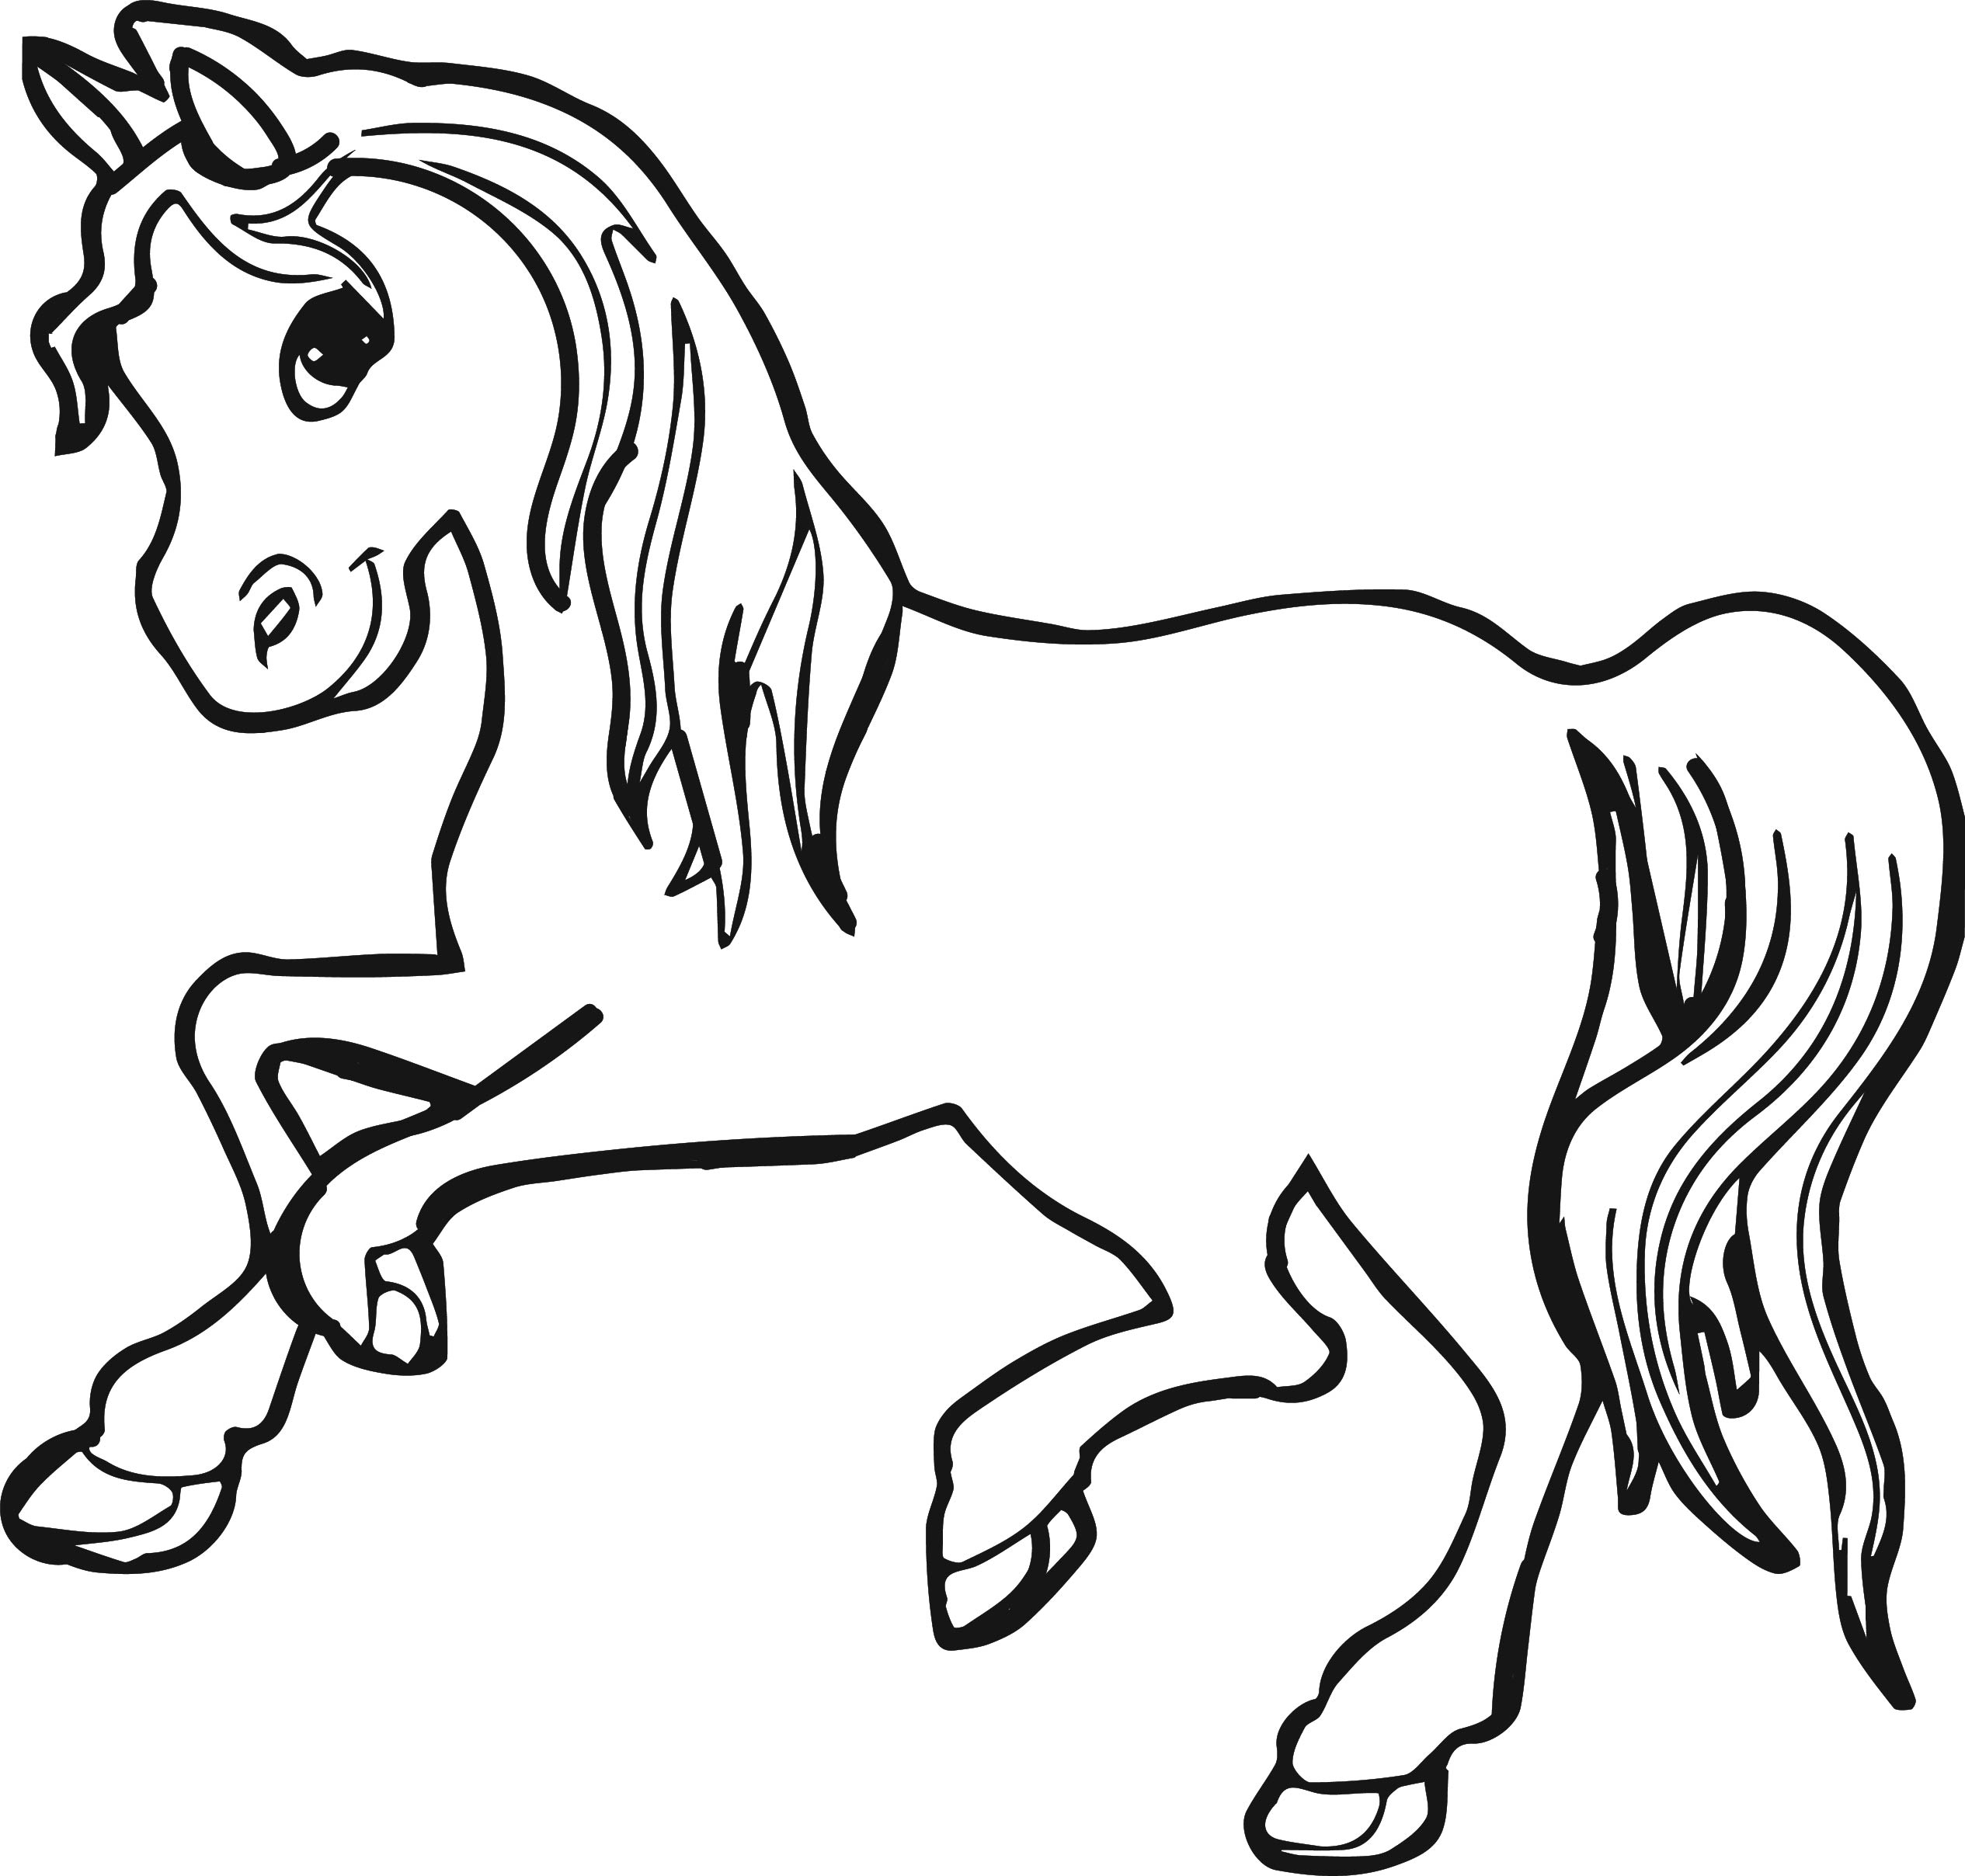 pictures of horses to colour in 9 inspirational pages to color selah works cindy39s pictures colour to horses of in